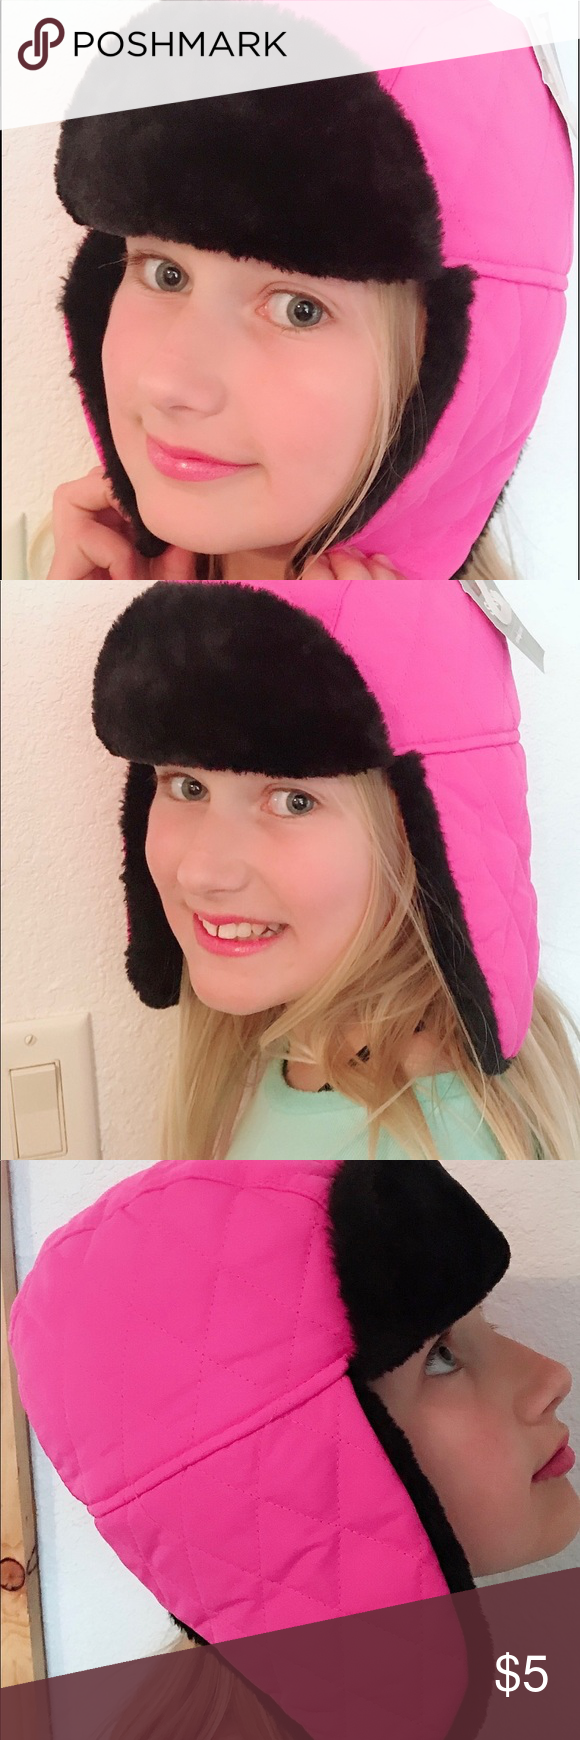 a859a28ac4127 Swiss Tech Performance Gear Fur Trapper. Brand New Swiss Tech Electric Pink Fur  Trapper Hat. One Size. With Black Faux Fur On The Inside.